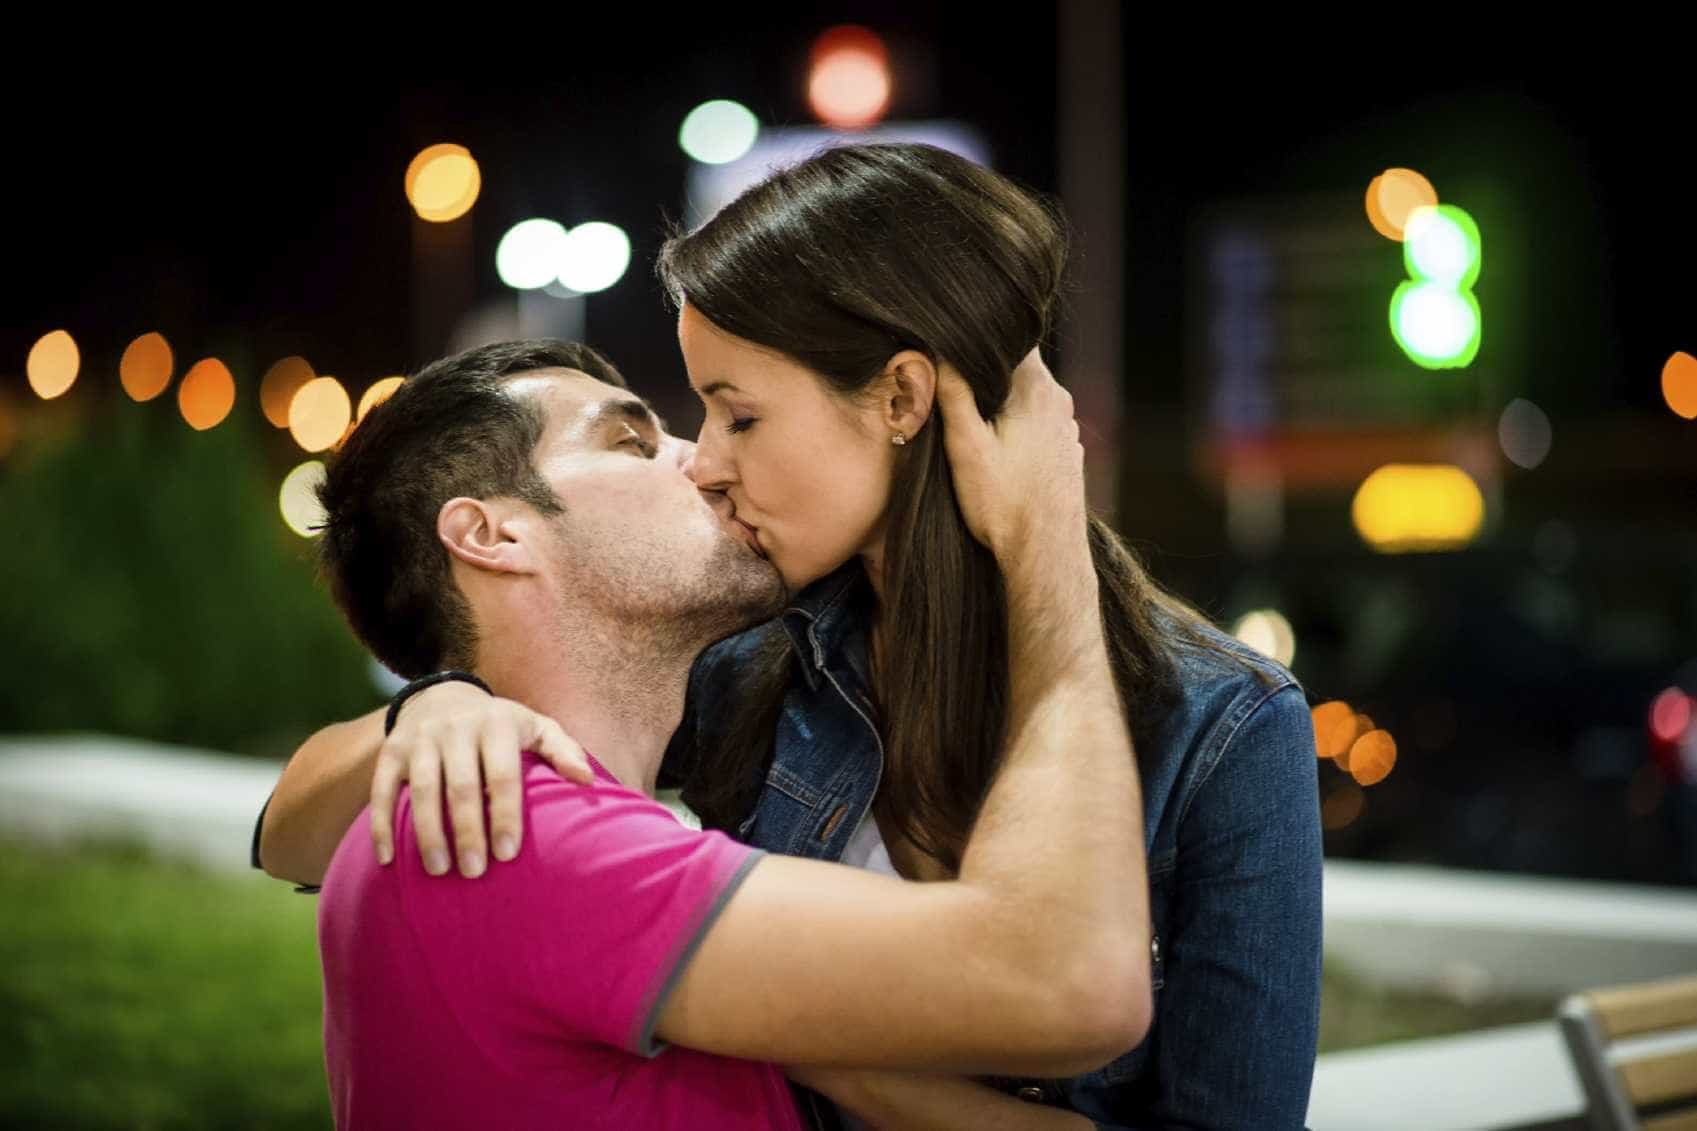 dating when to kiss second date